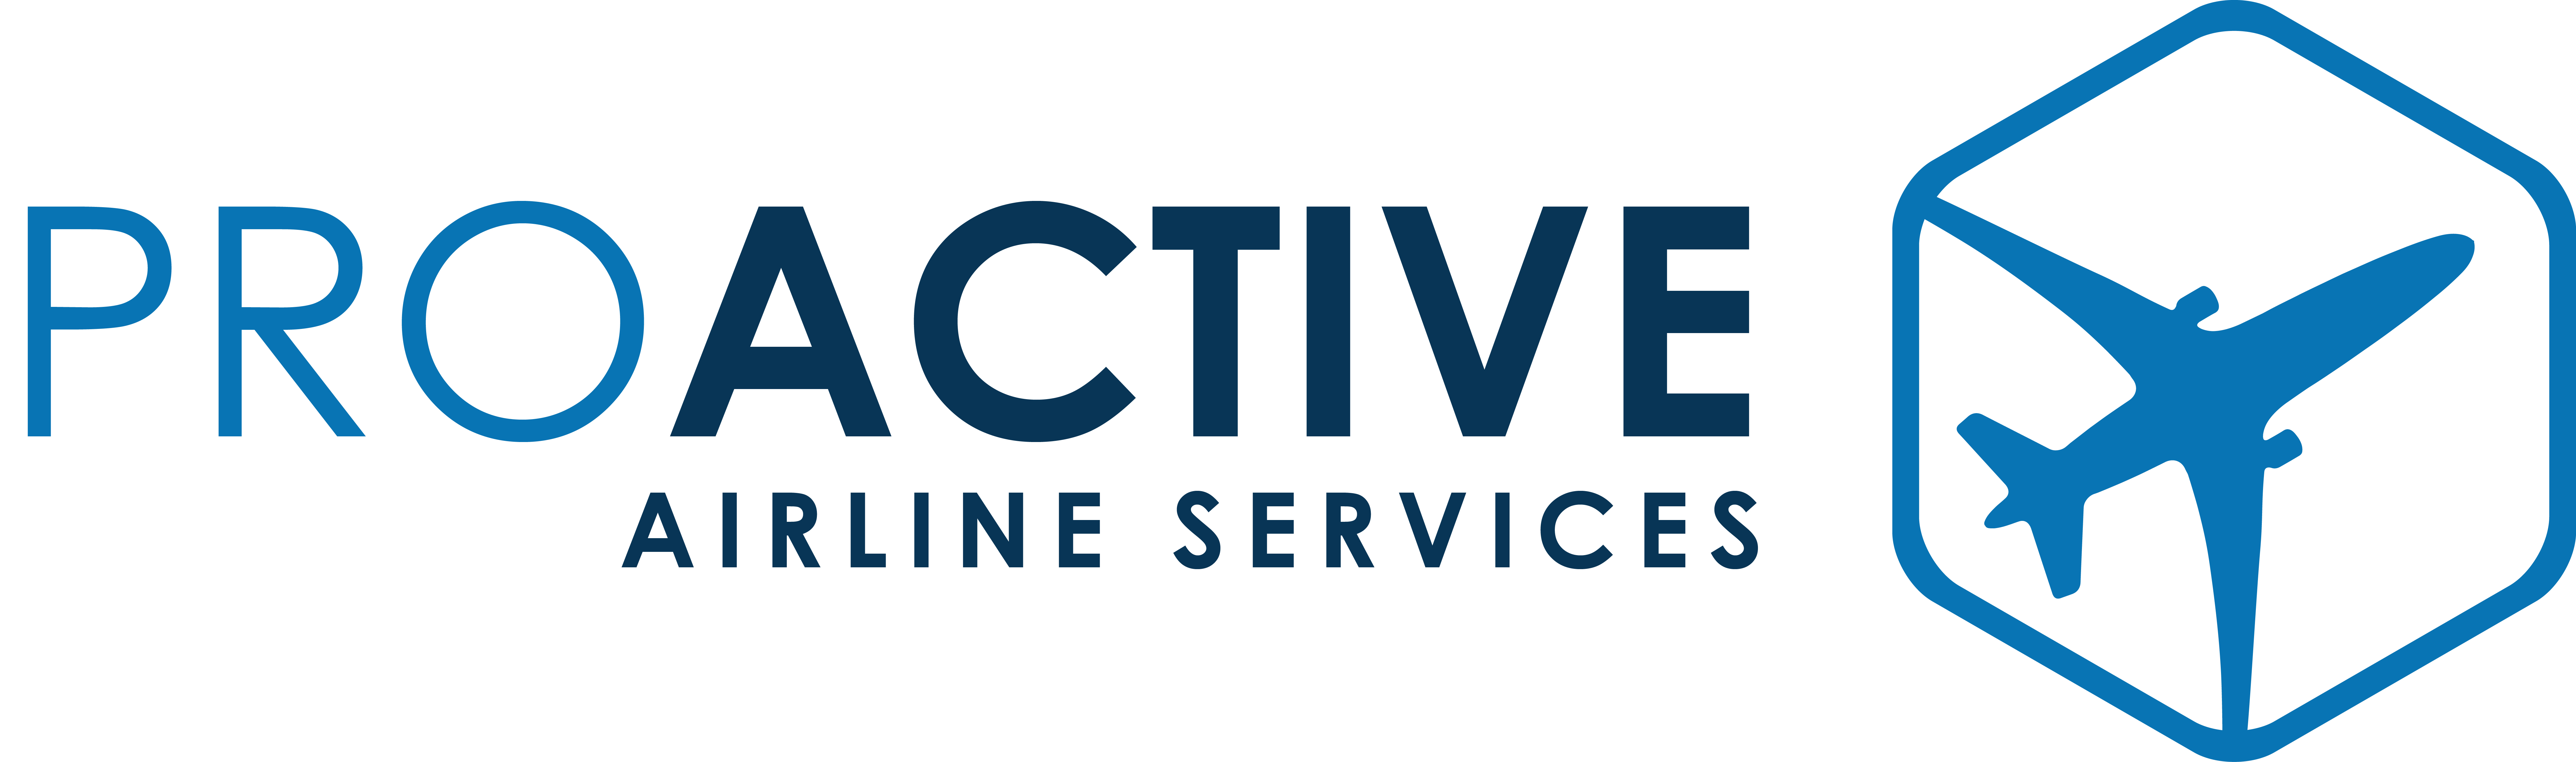 Proactive Airline Services